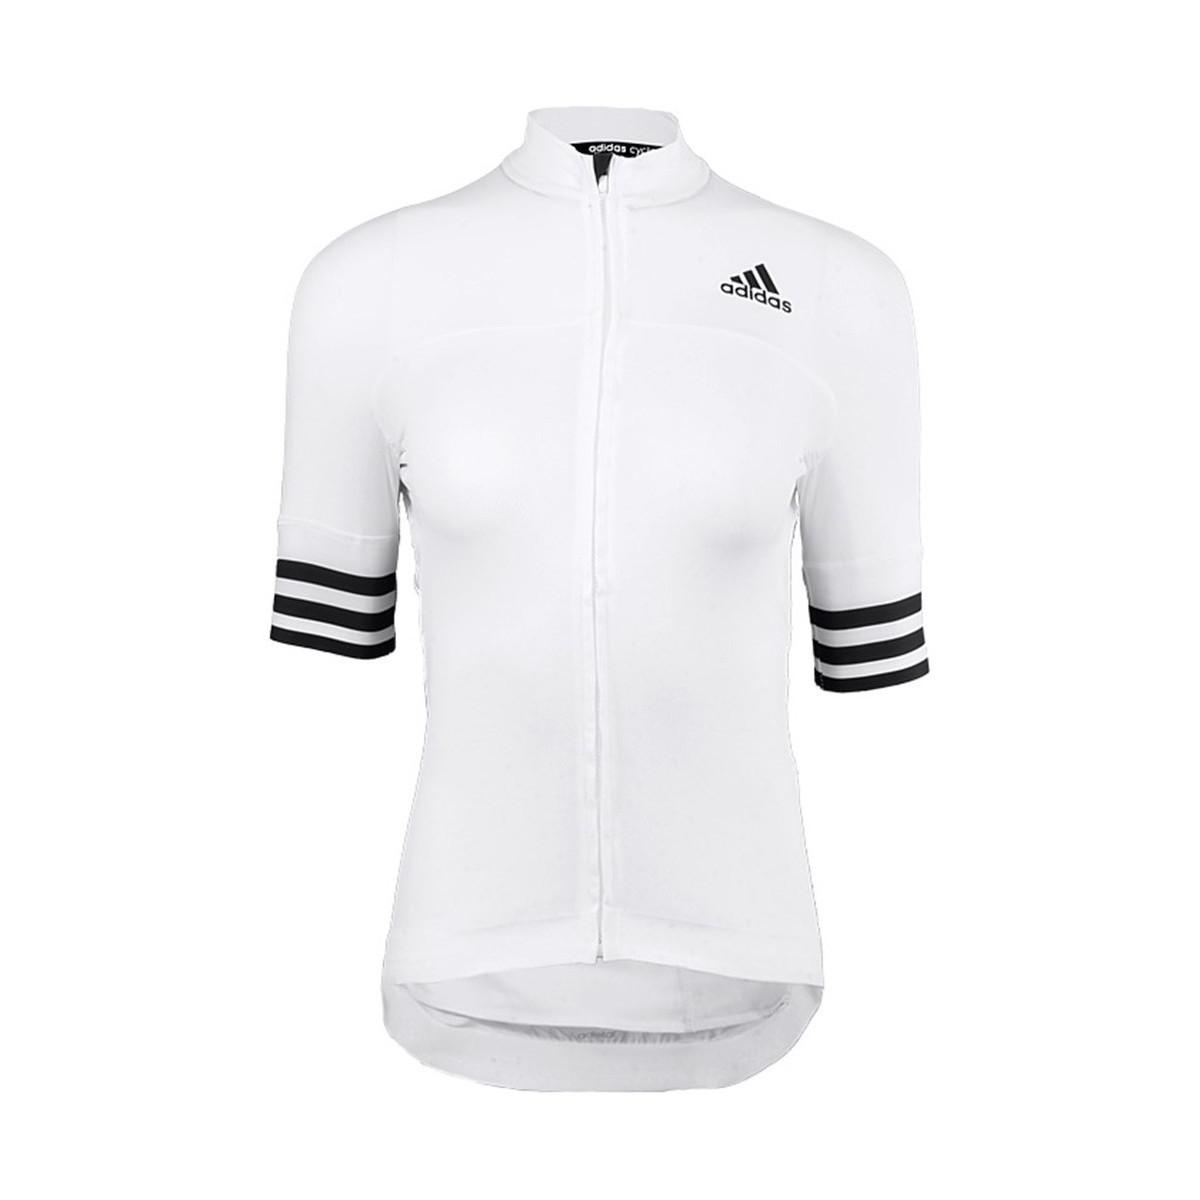 Adidas - Adistar Shortsleeve Jersey W Women s T Shirt In White - Lyst. View  fullscreen 68d47a704